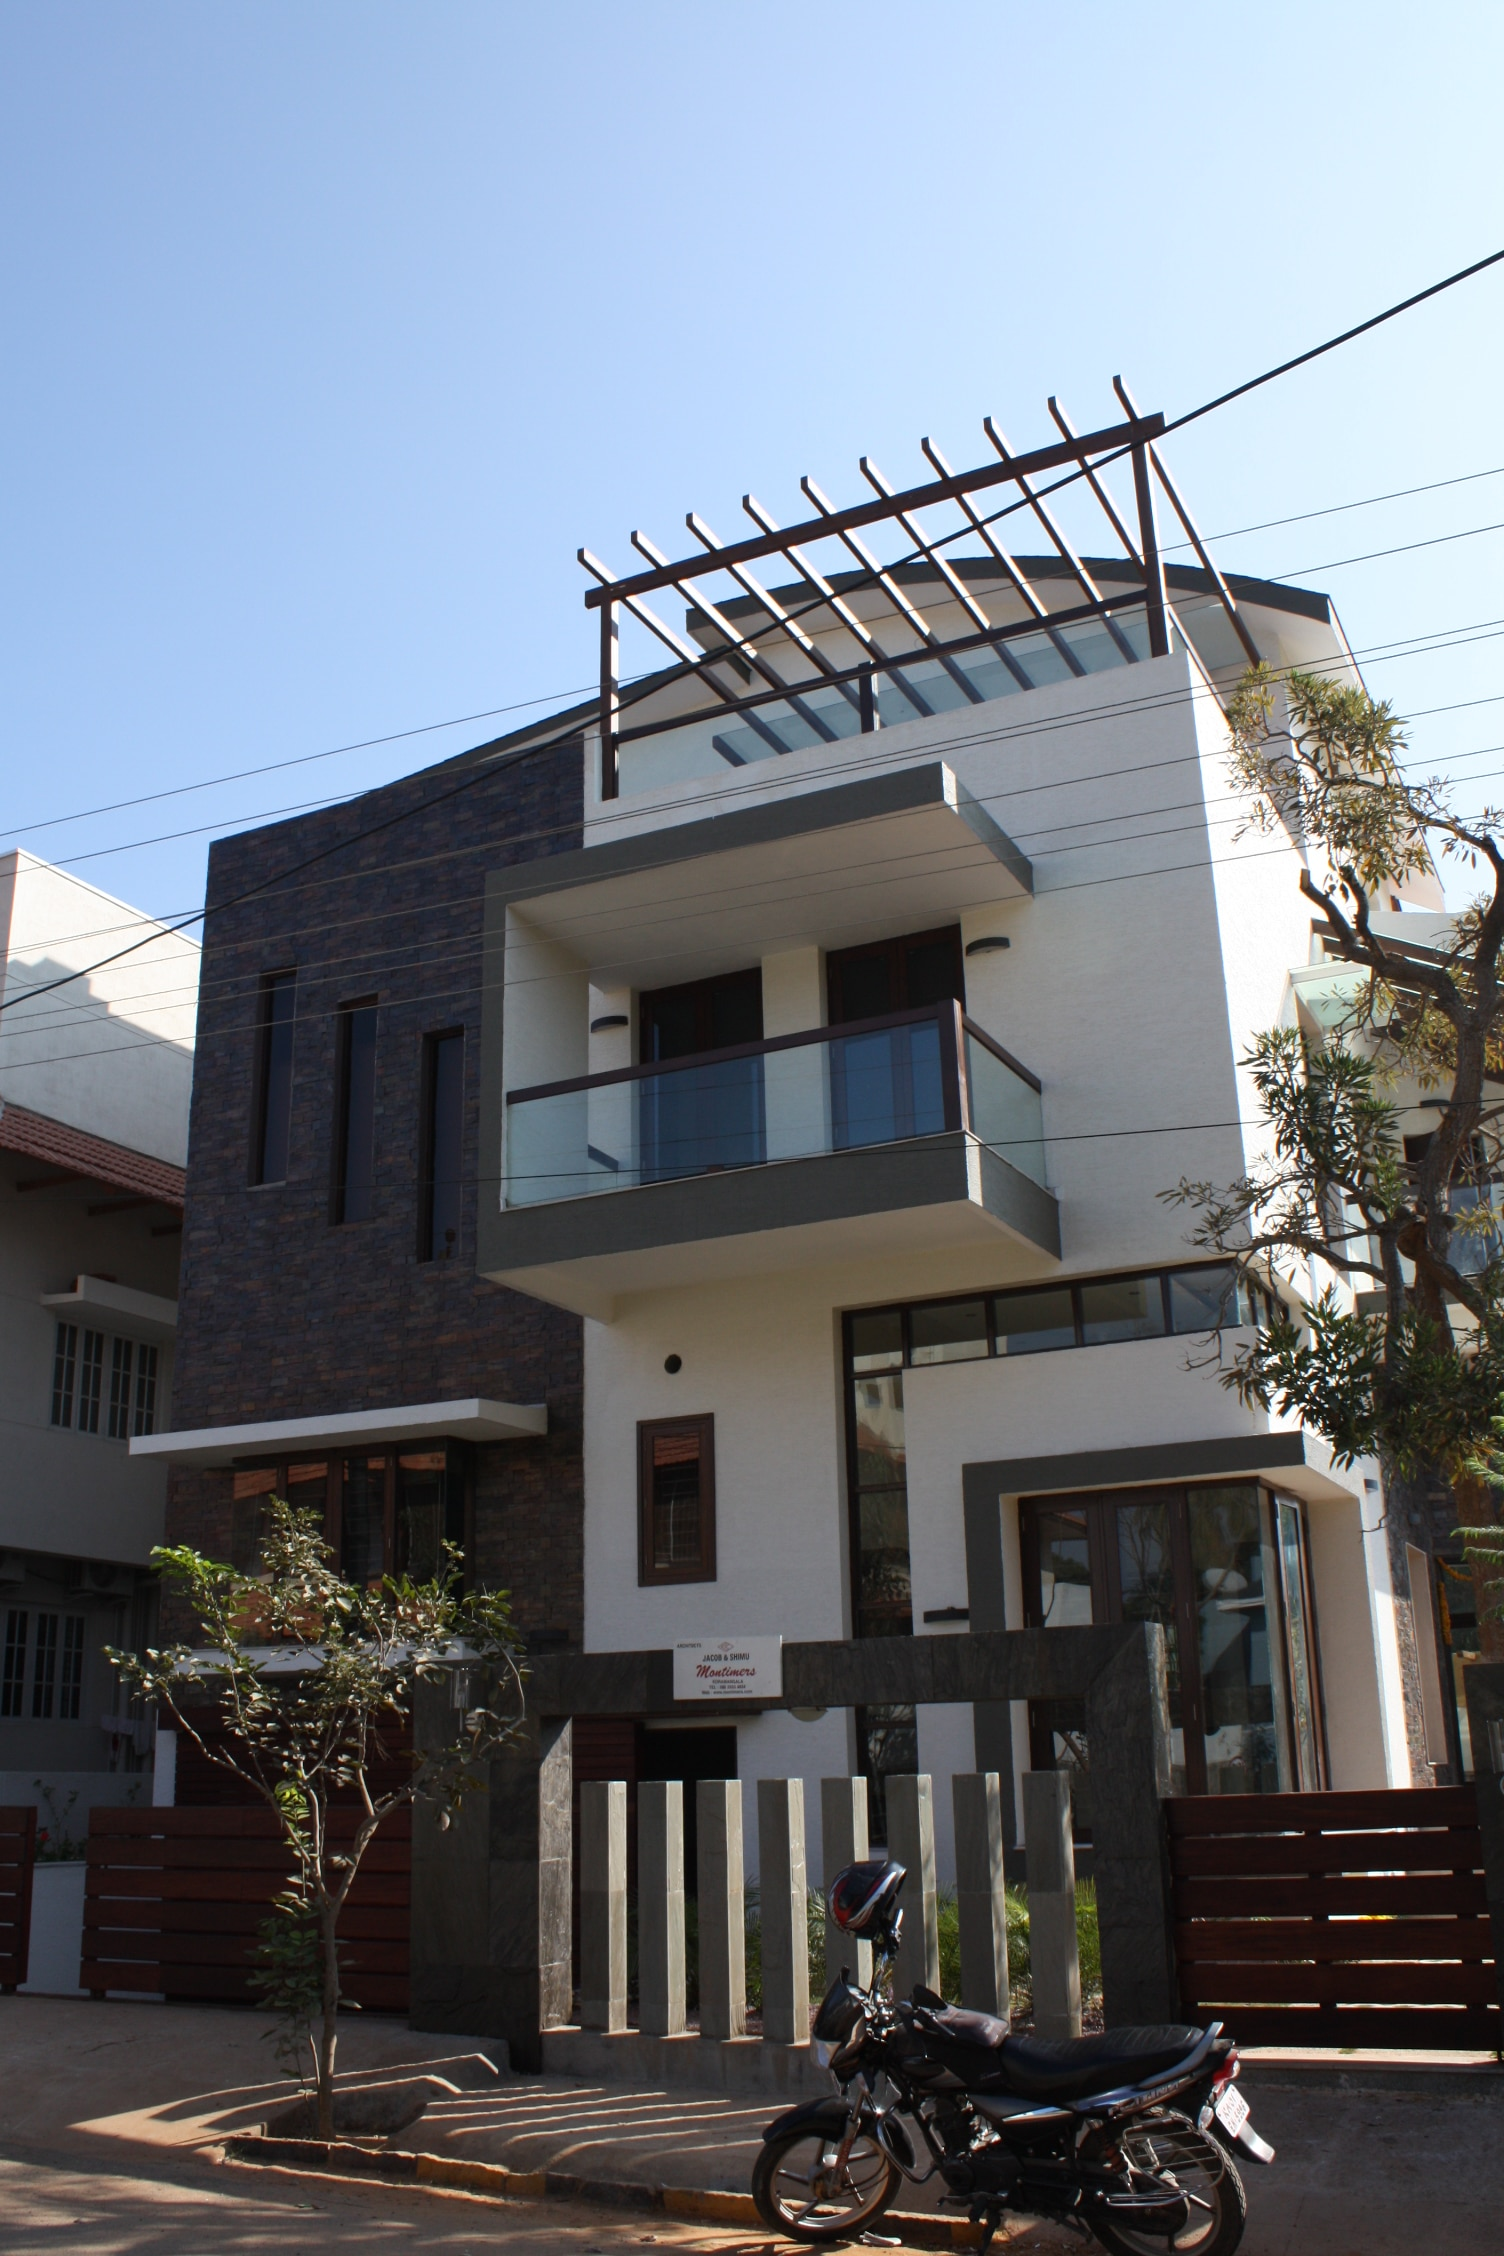 Best, Top, Leading architect in Bangalore montimers, Koramangala. Latest , modern, contemporary , ethnic designs . www.montimers.com face book- montimers architects 08041677116 09341235616